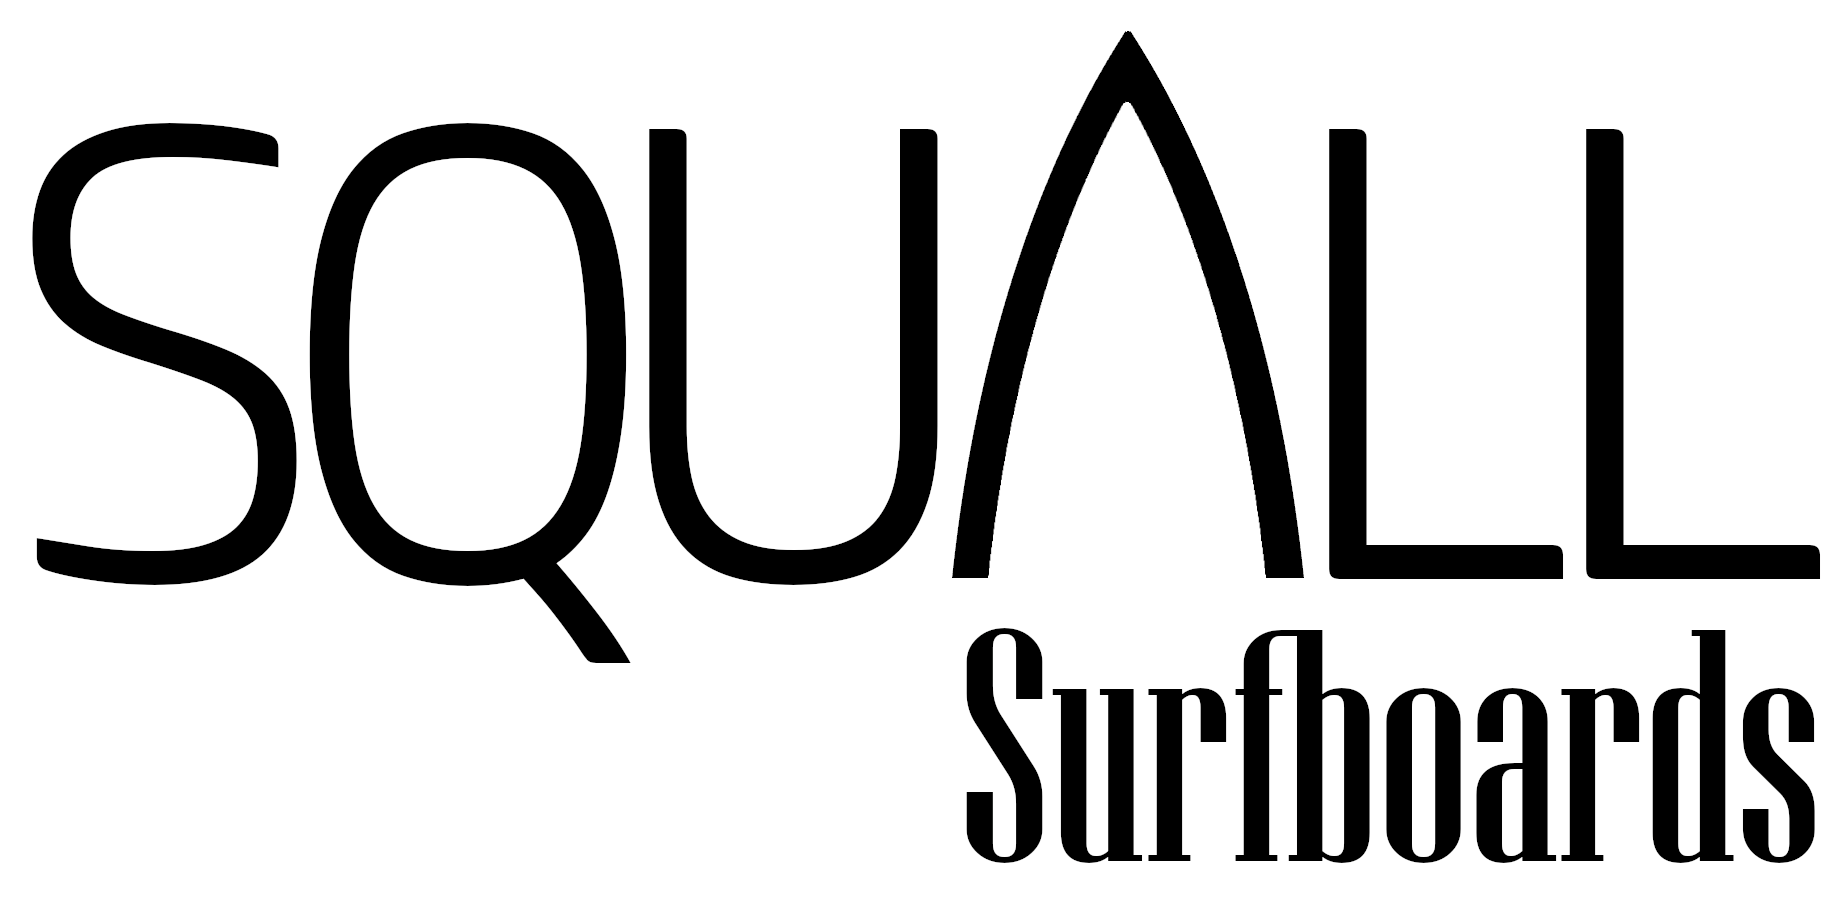 Squall Surfboards logo